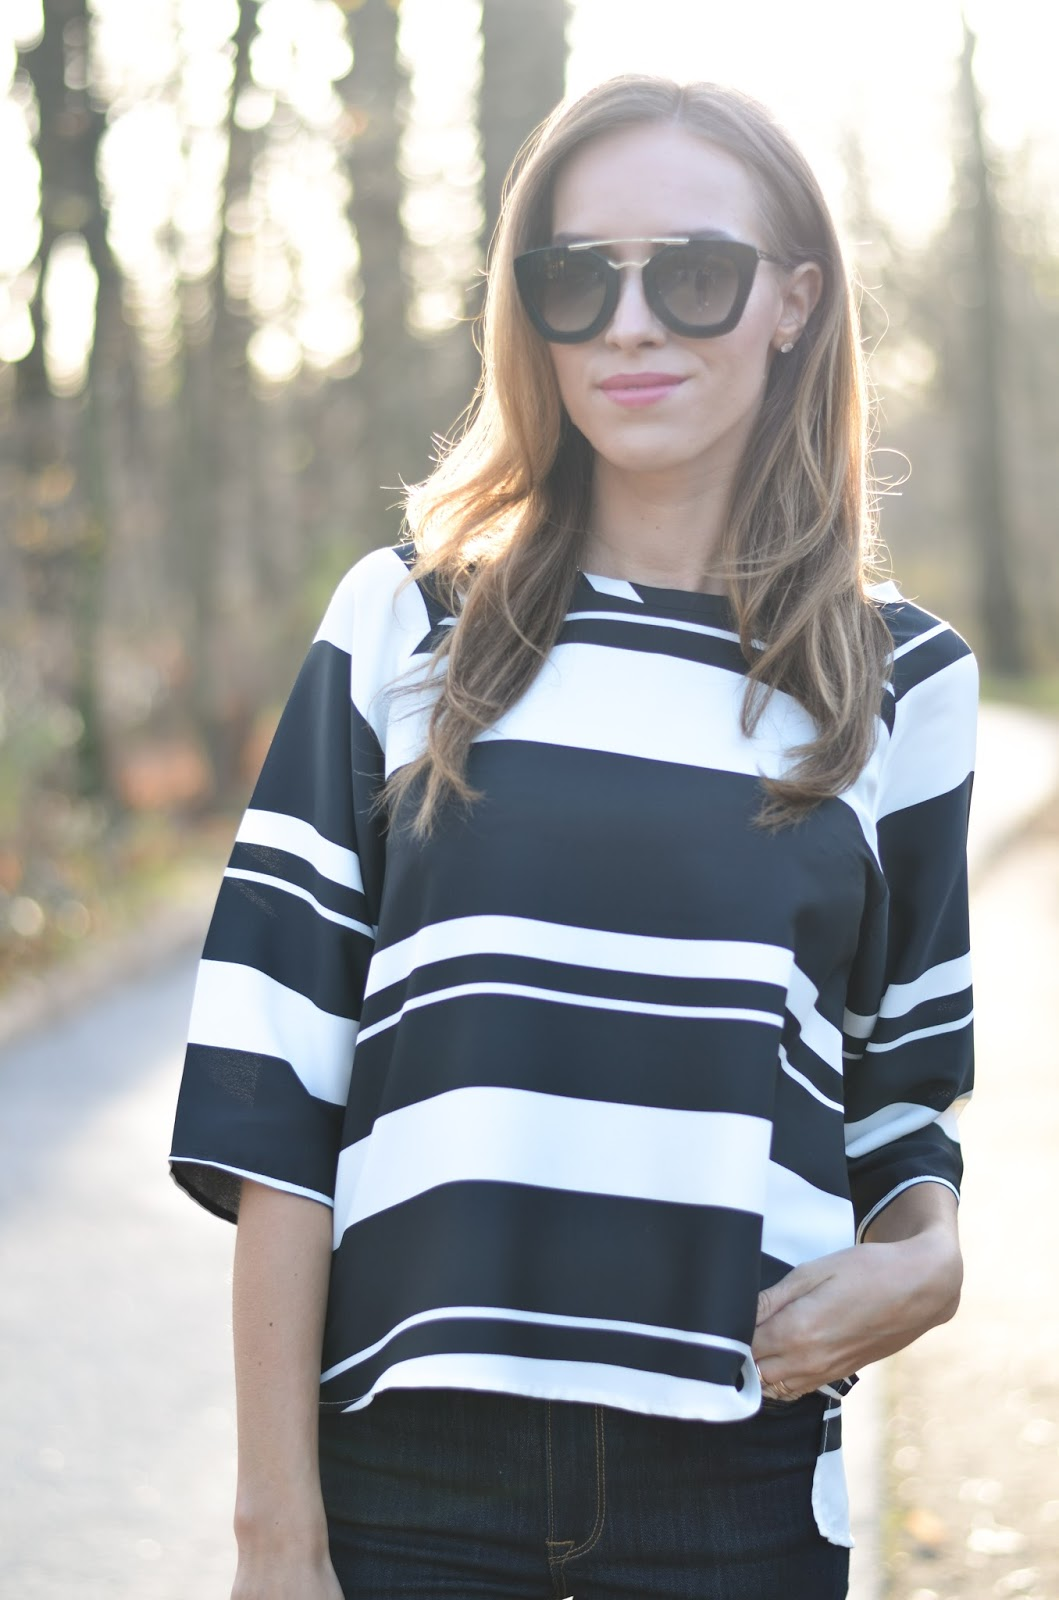 kristjaana mere blue white stripe blouse prada cat eye sunglasses backlight